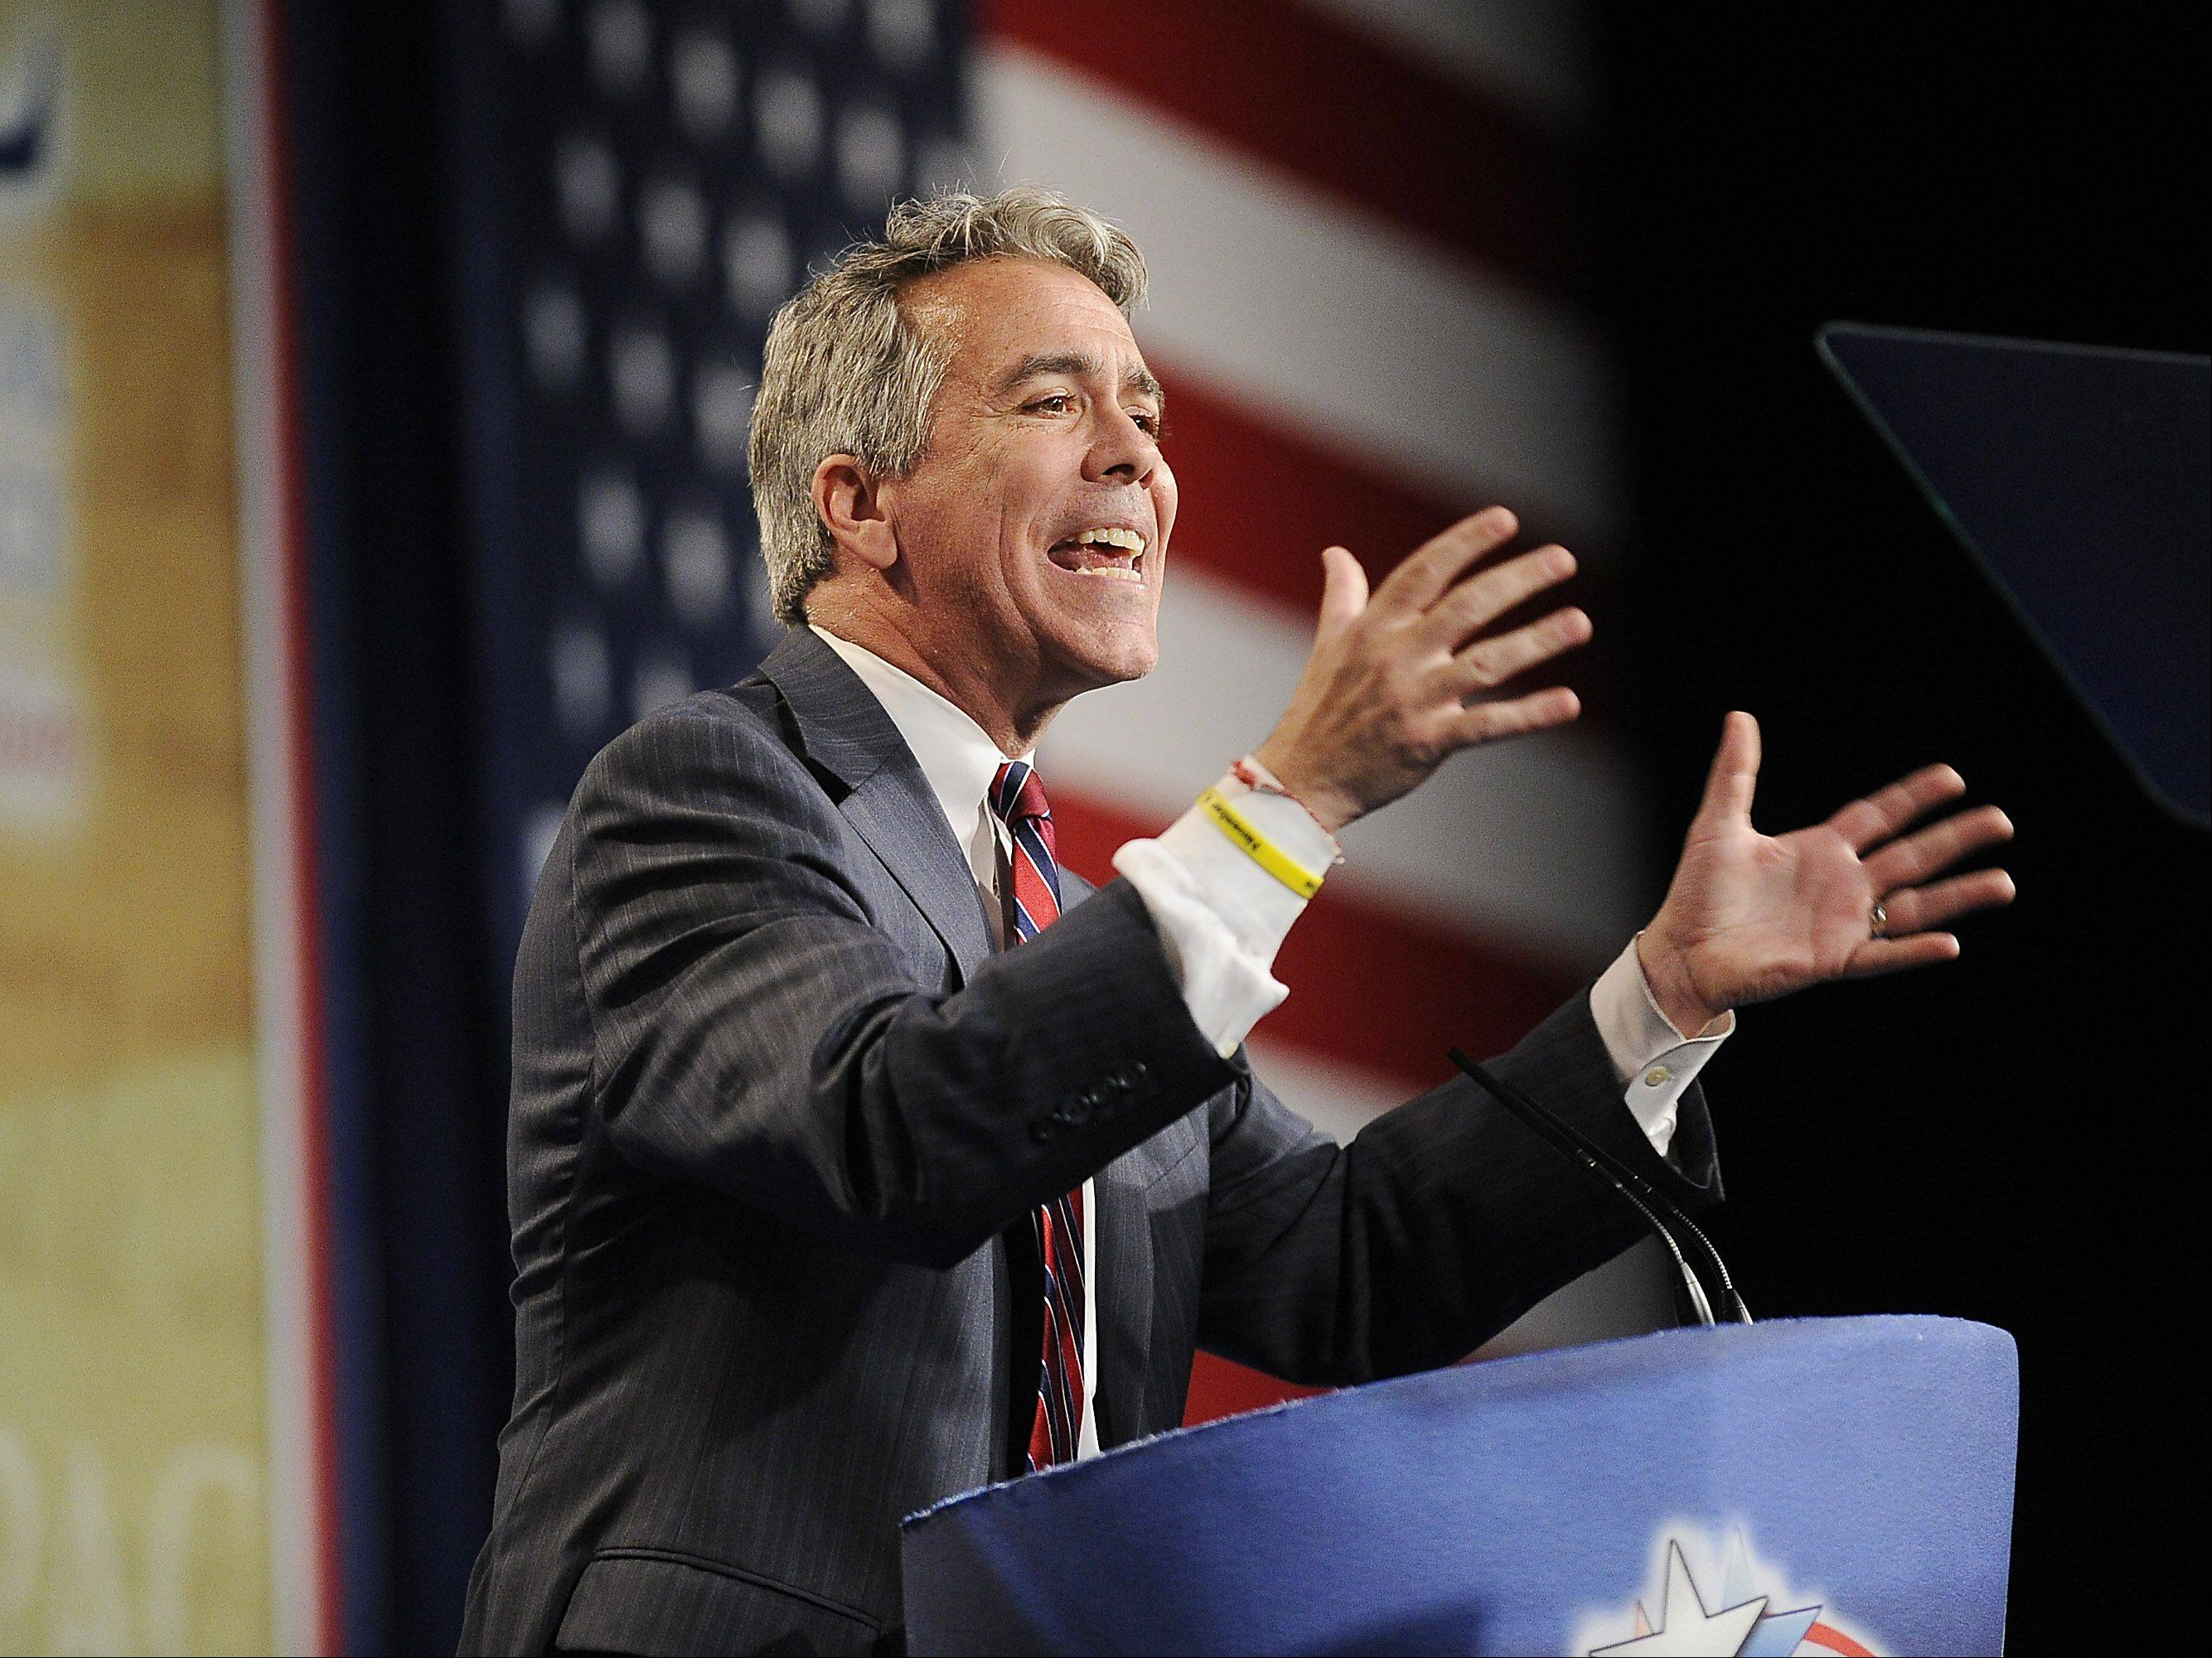 Congressman Joe Walsh of McHenry speaks at the CPAC Chicago's Conservative Political Action Conference on Friday at the Stephens Convention Center in Rosemont.